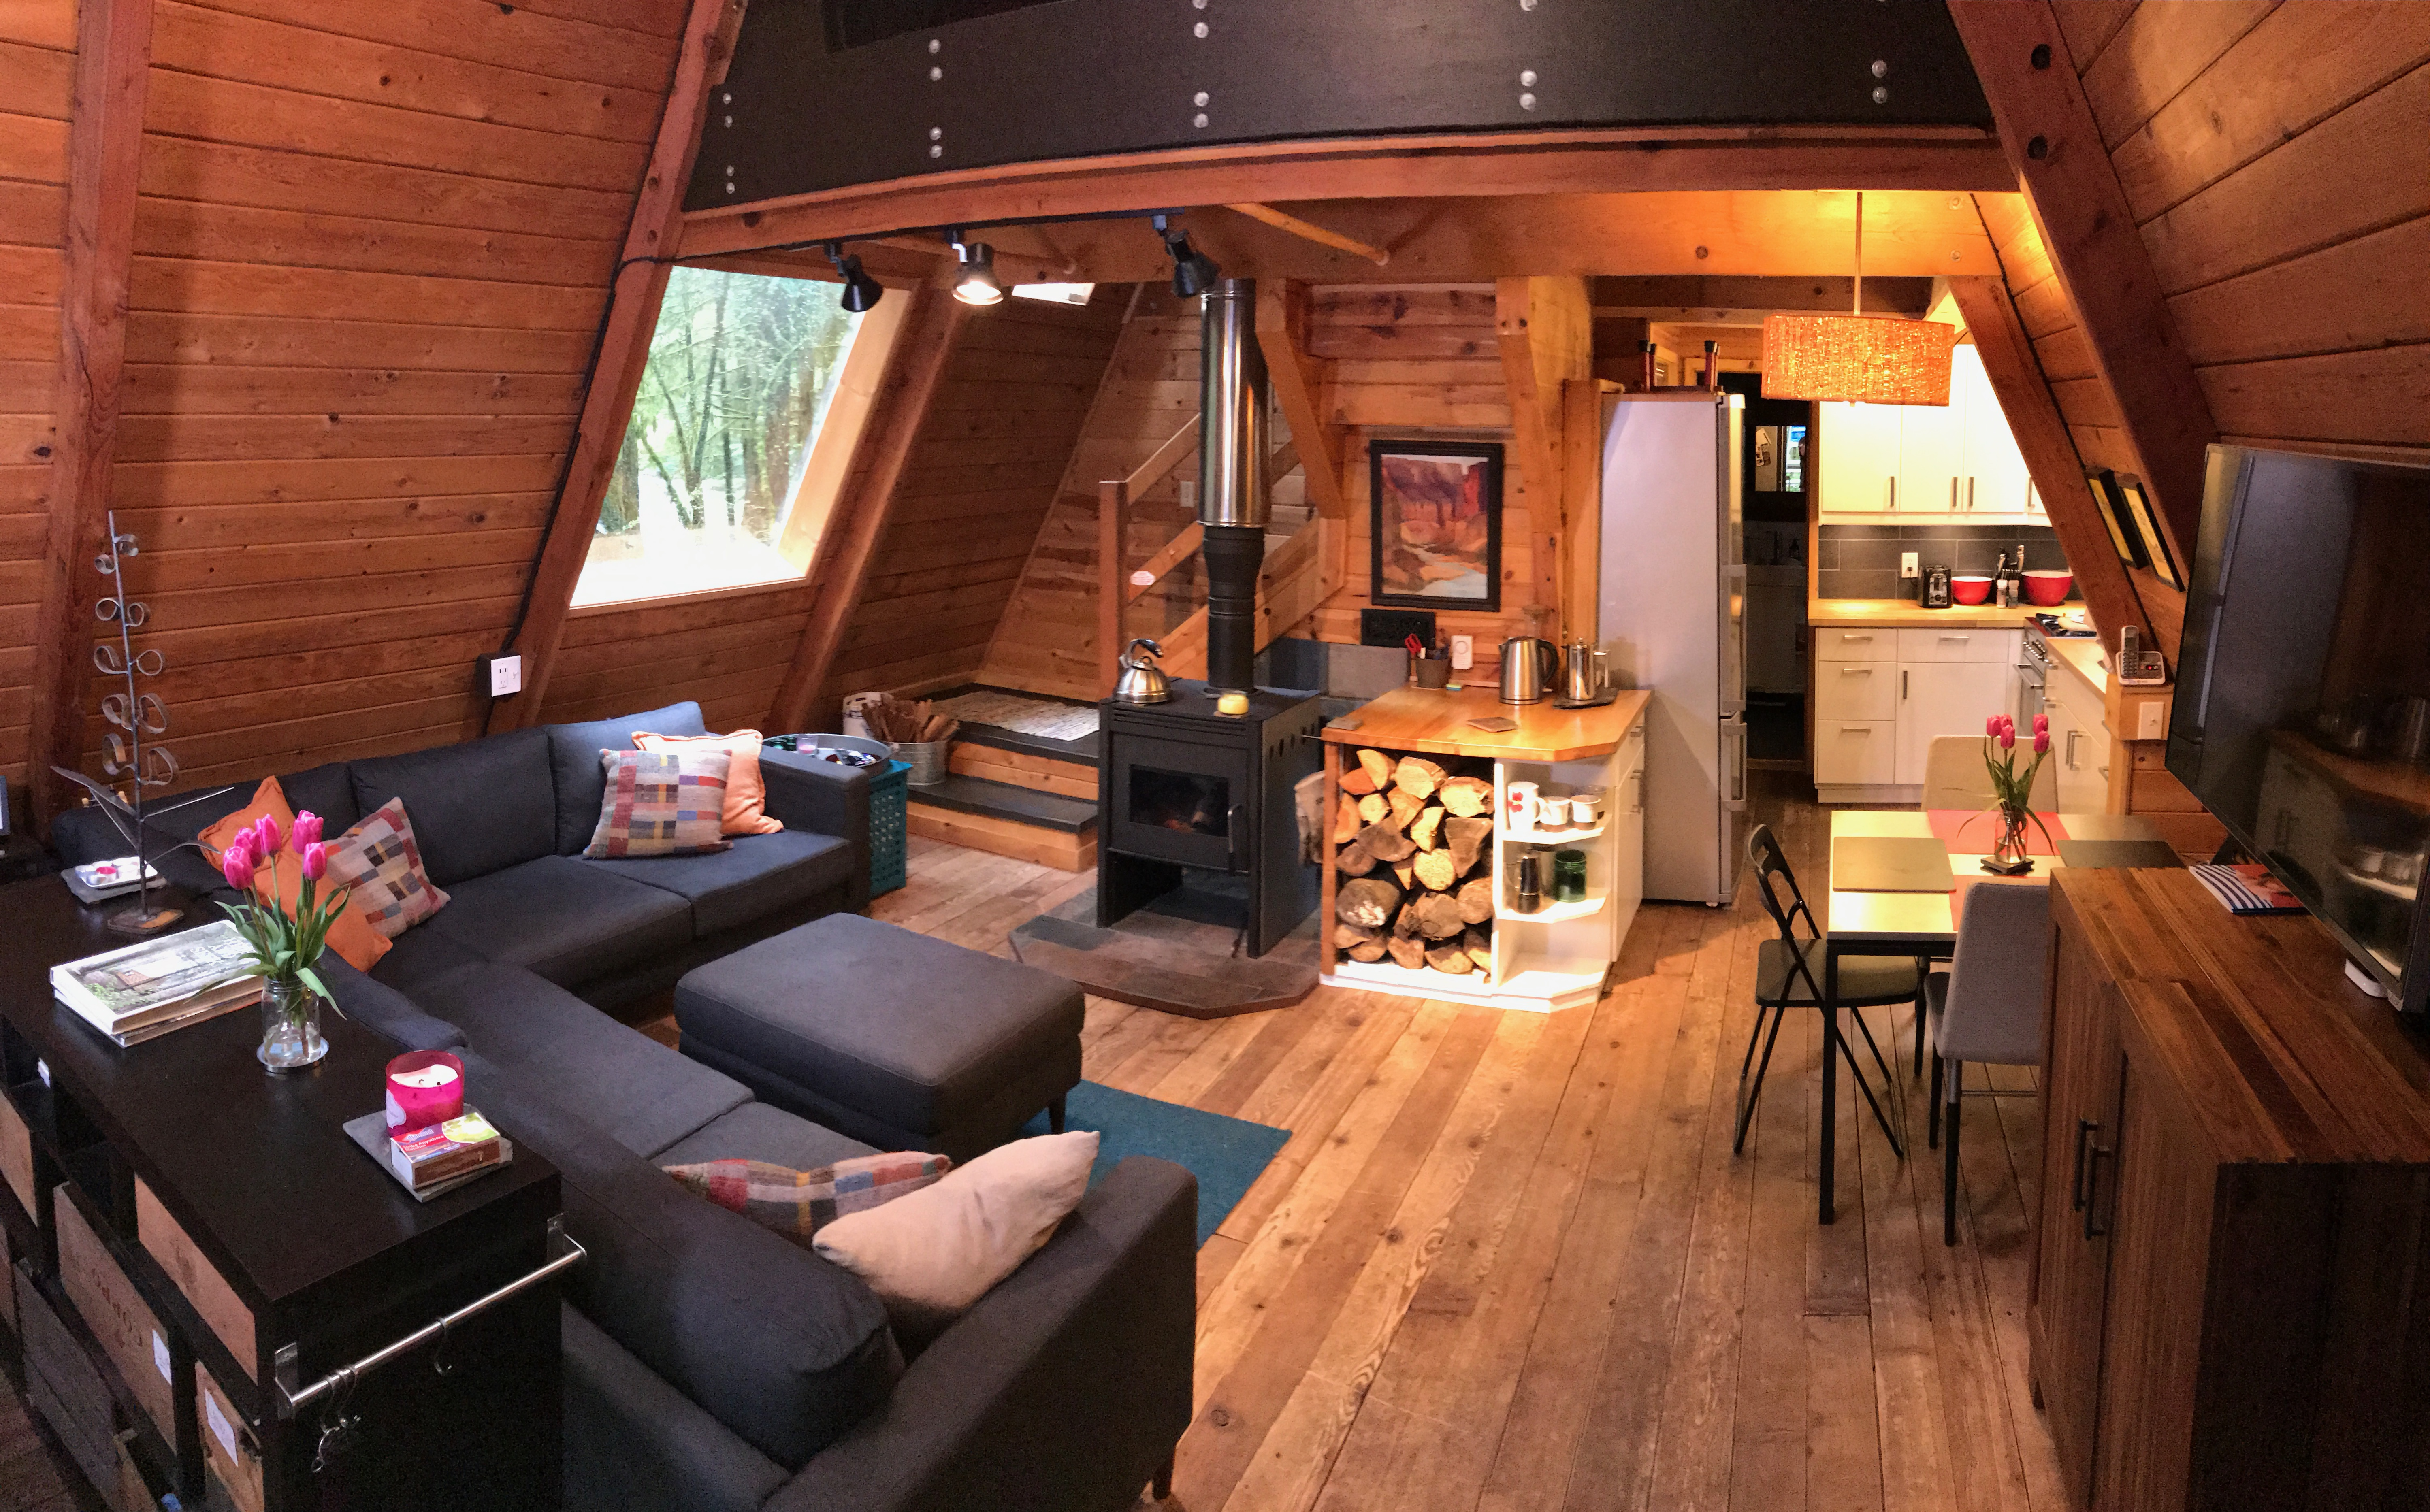 Rustic 70 S A Frame With A Cozy Modern Interior Cabins For Rent In Deming Washington United States